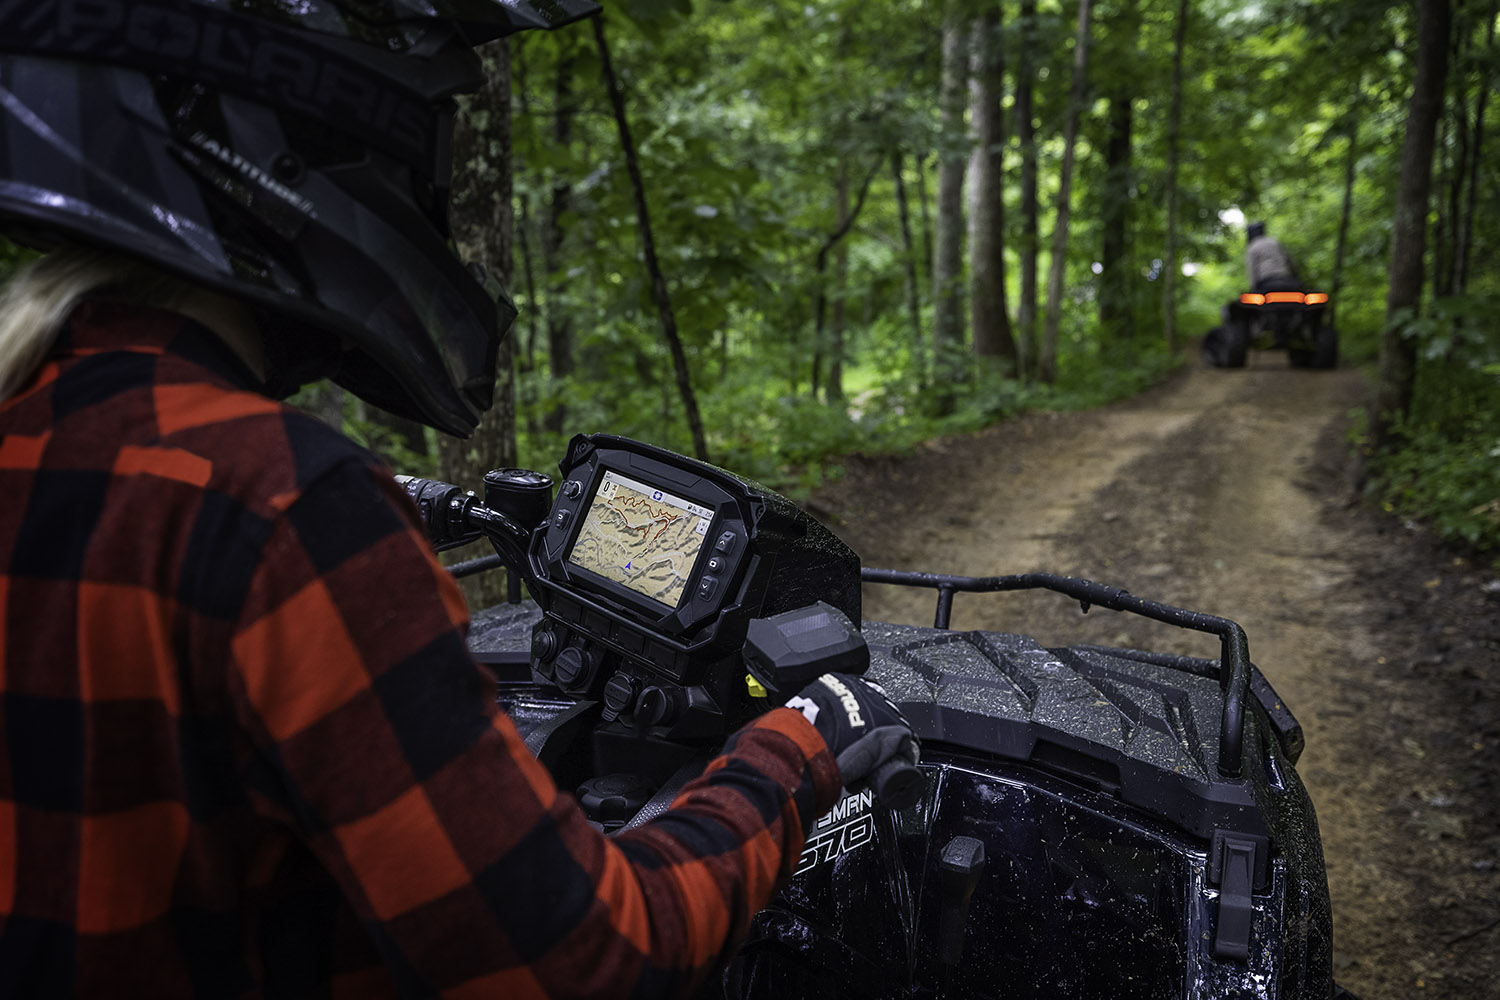 RIDE COMMAND Platform Achieves One Million Miles of trails: Polaris is donating $40,000